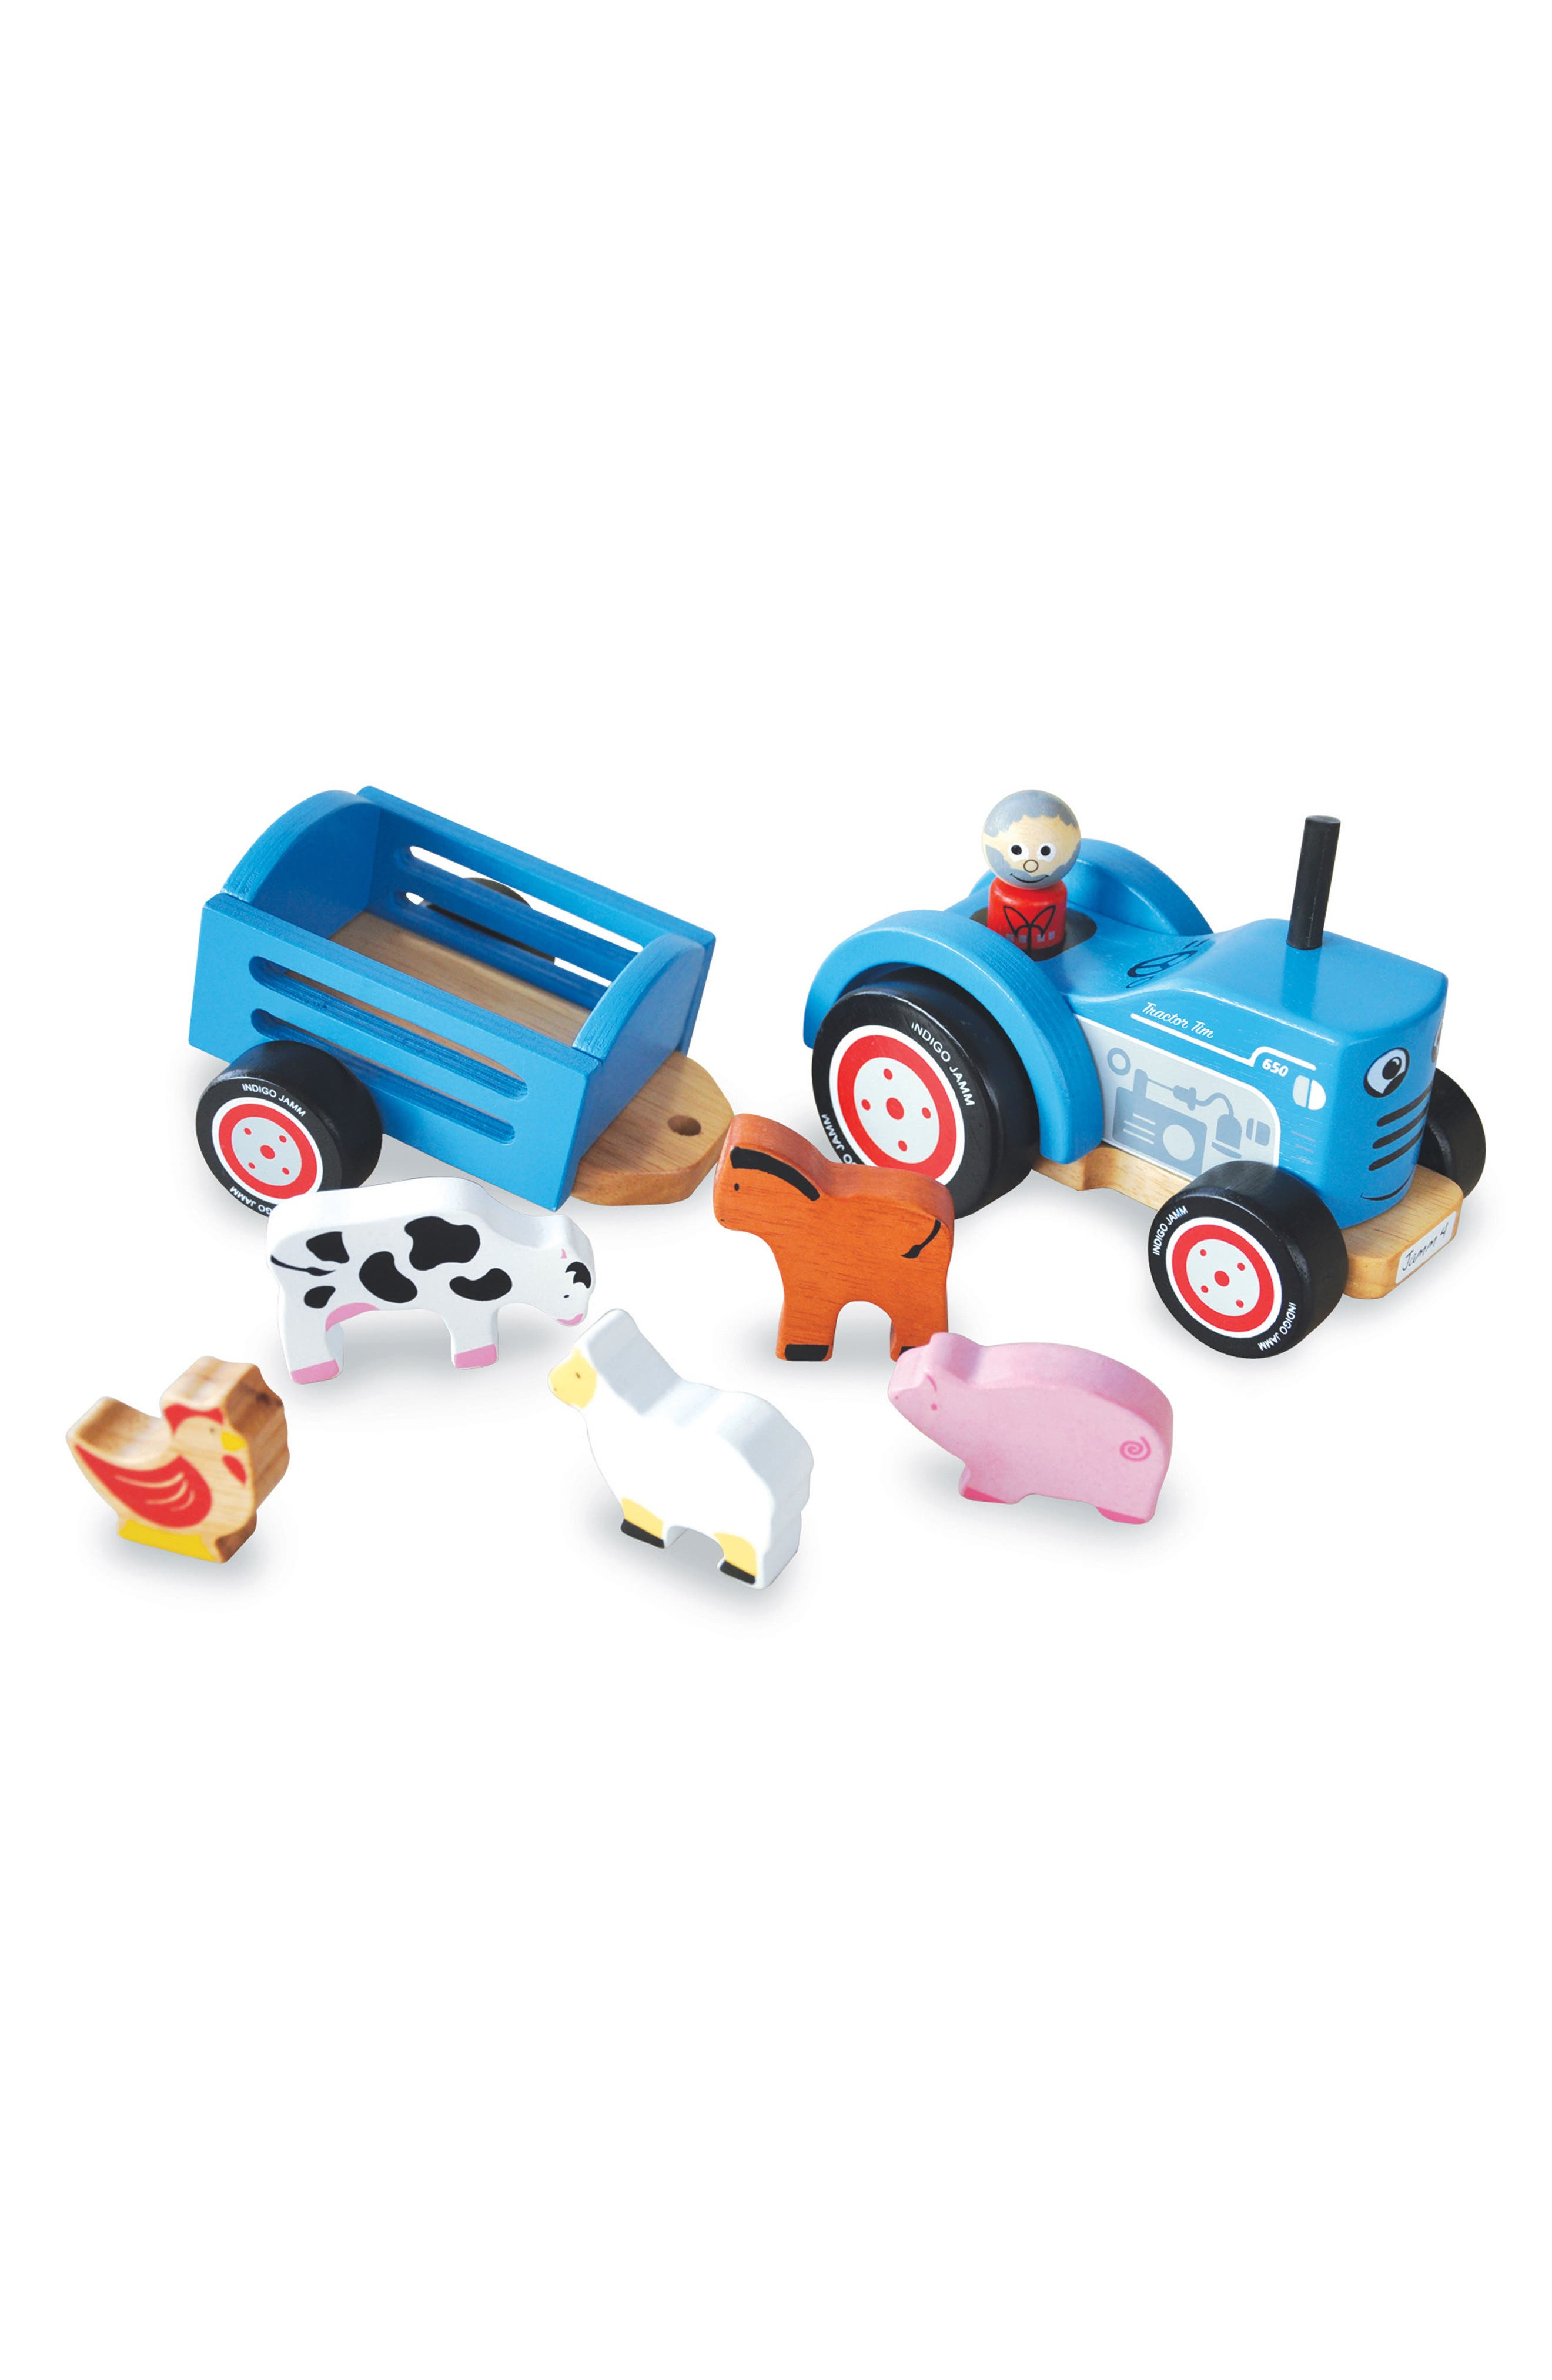 Wooden 8-Piece Farm Tractor Play Set,                         Main,                         color, Blue